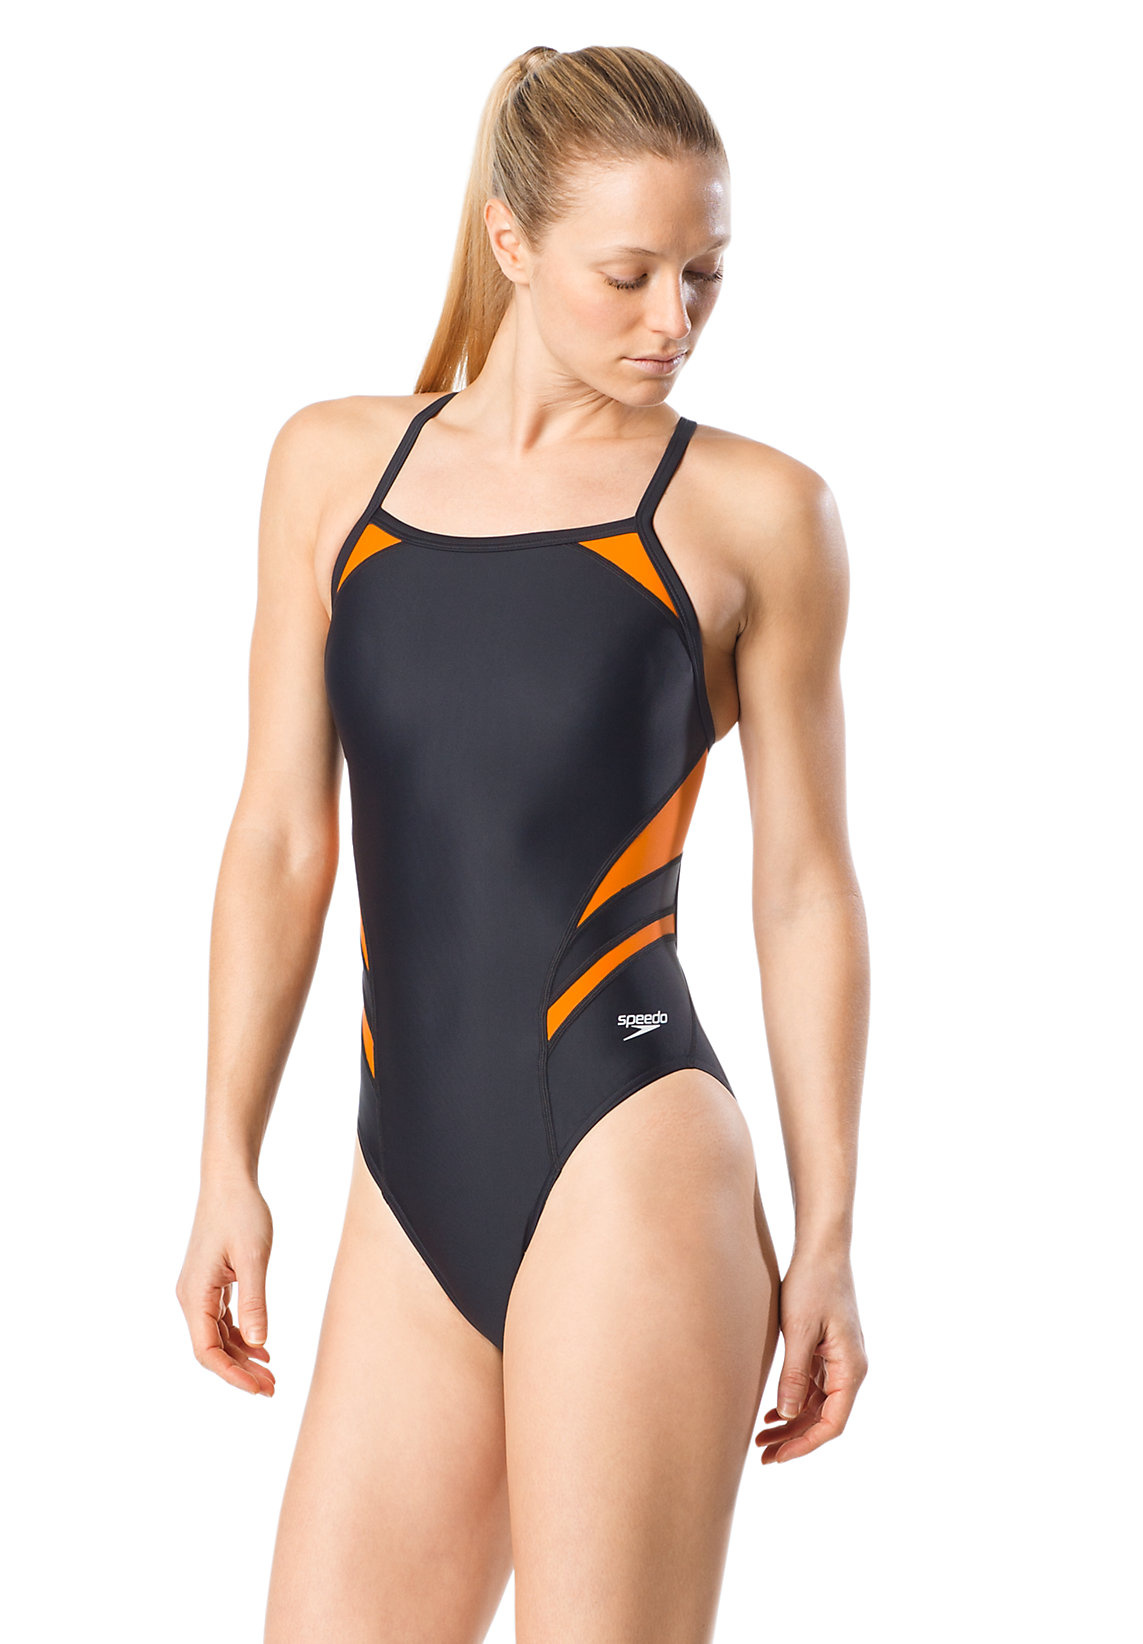 Lookout Canyon Female One Piece